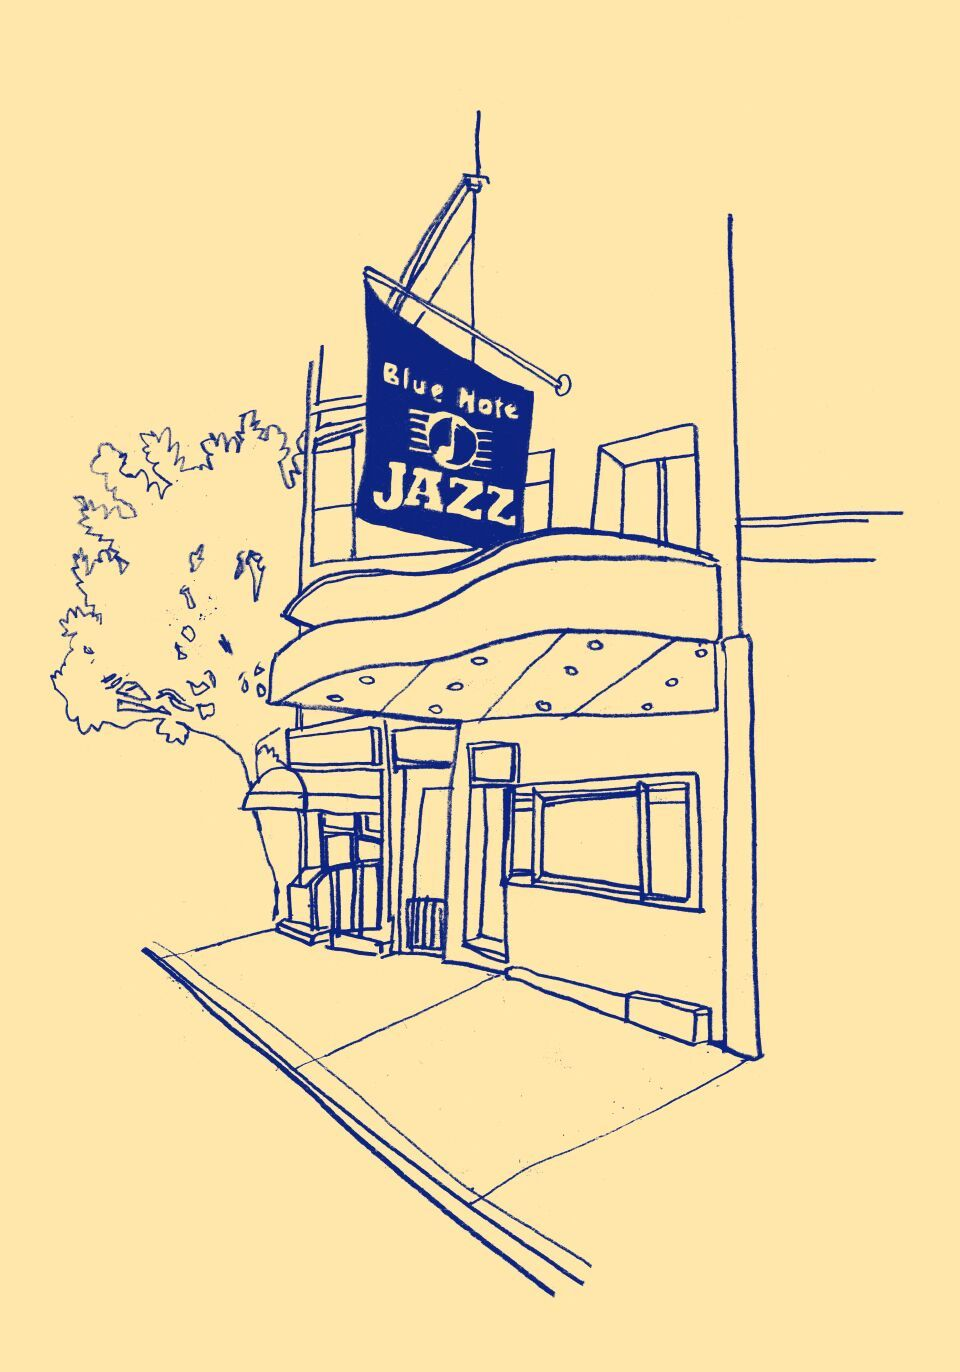 Illustration of Blue Note jazz club by Fanny Luor